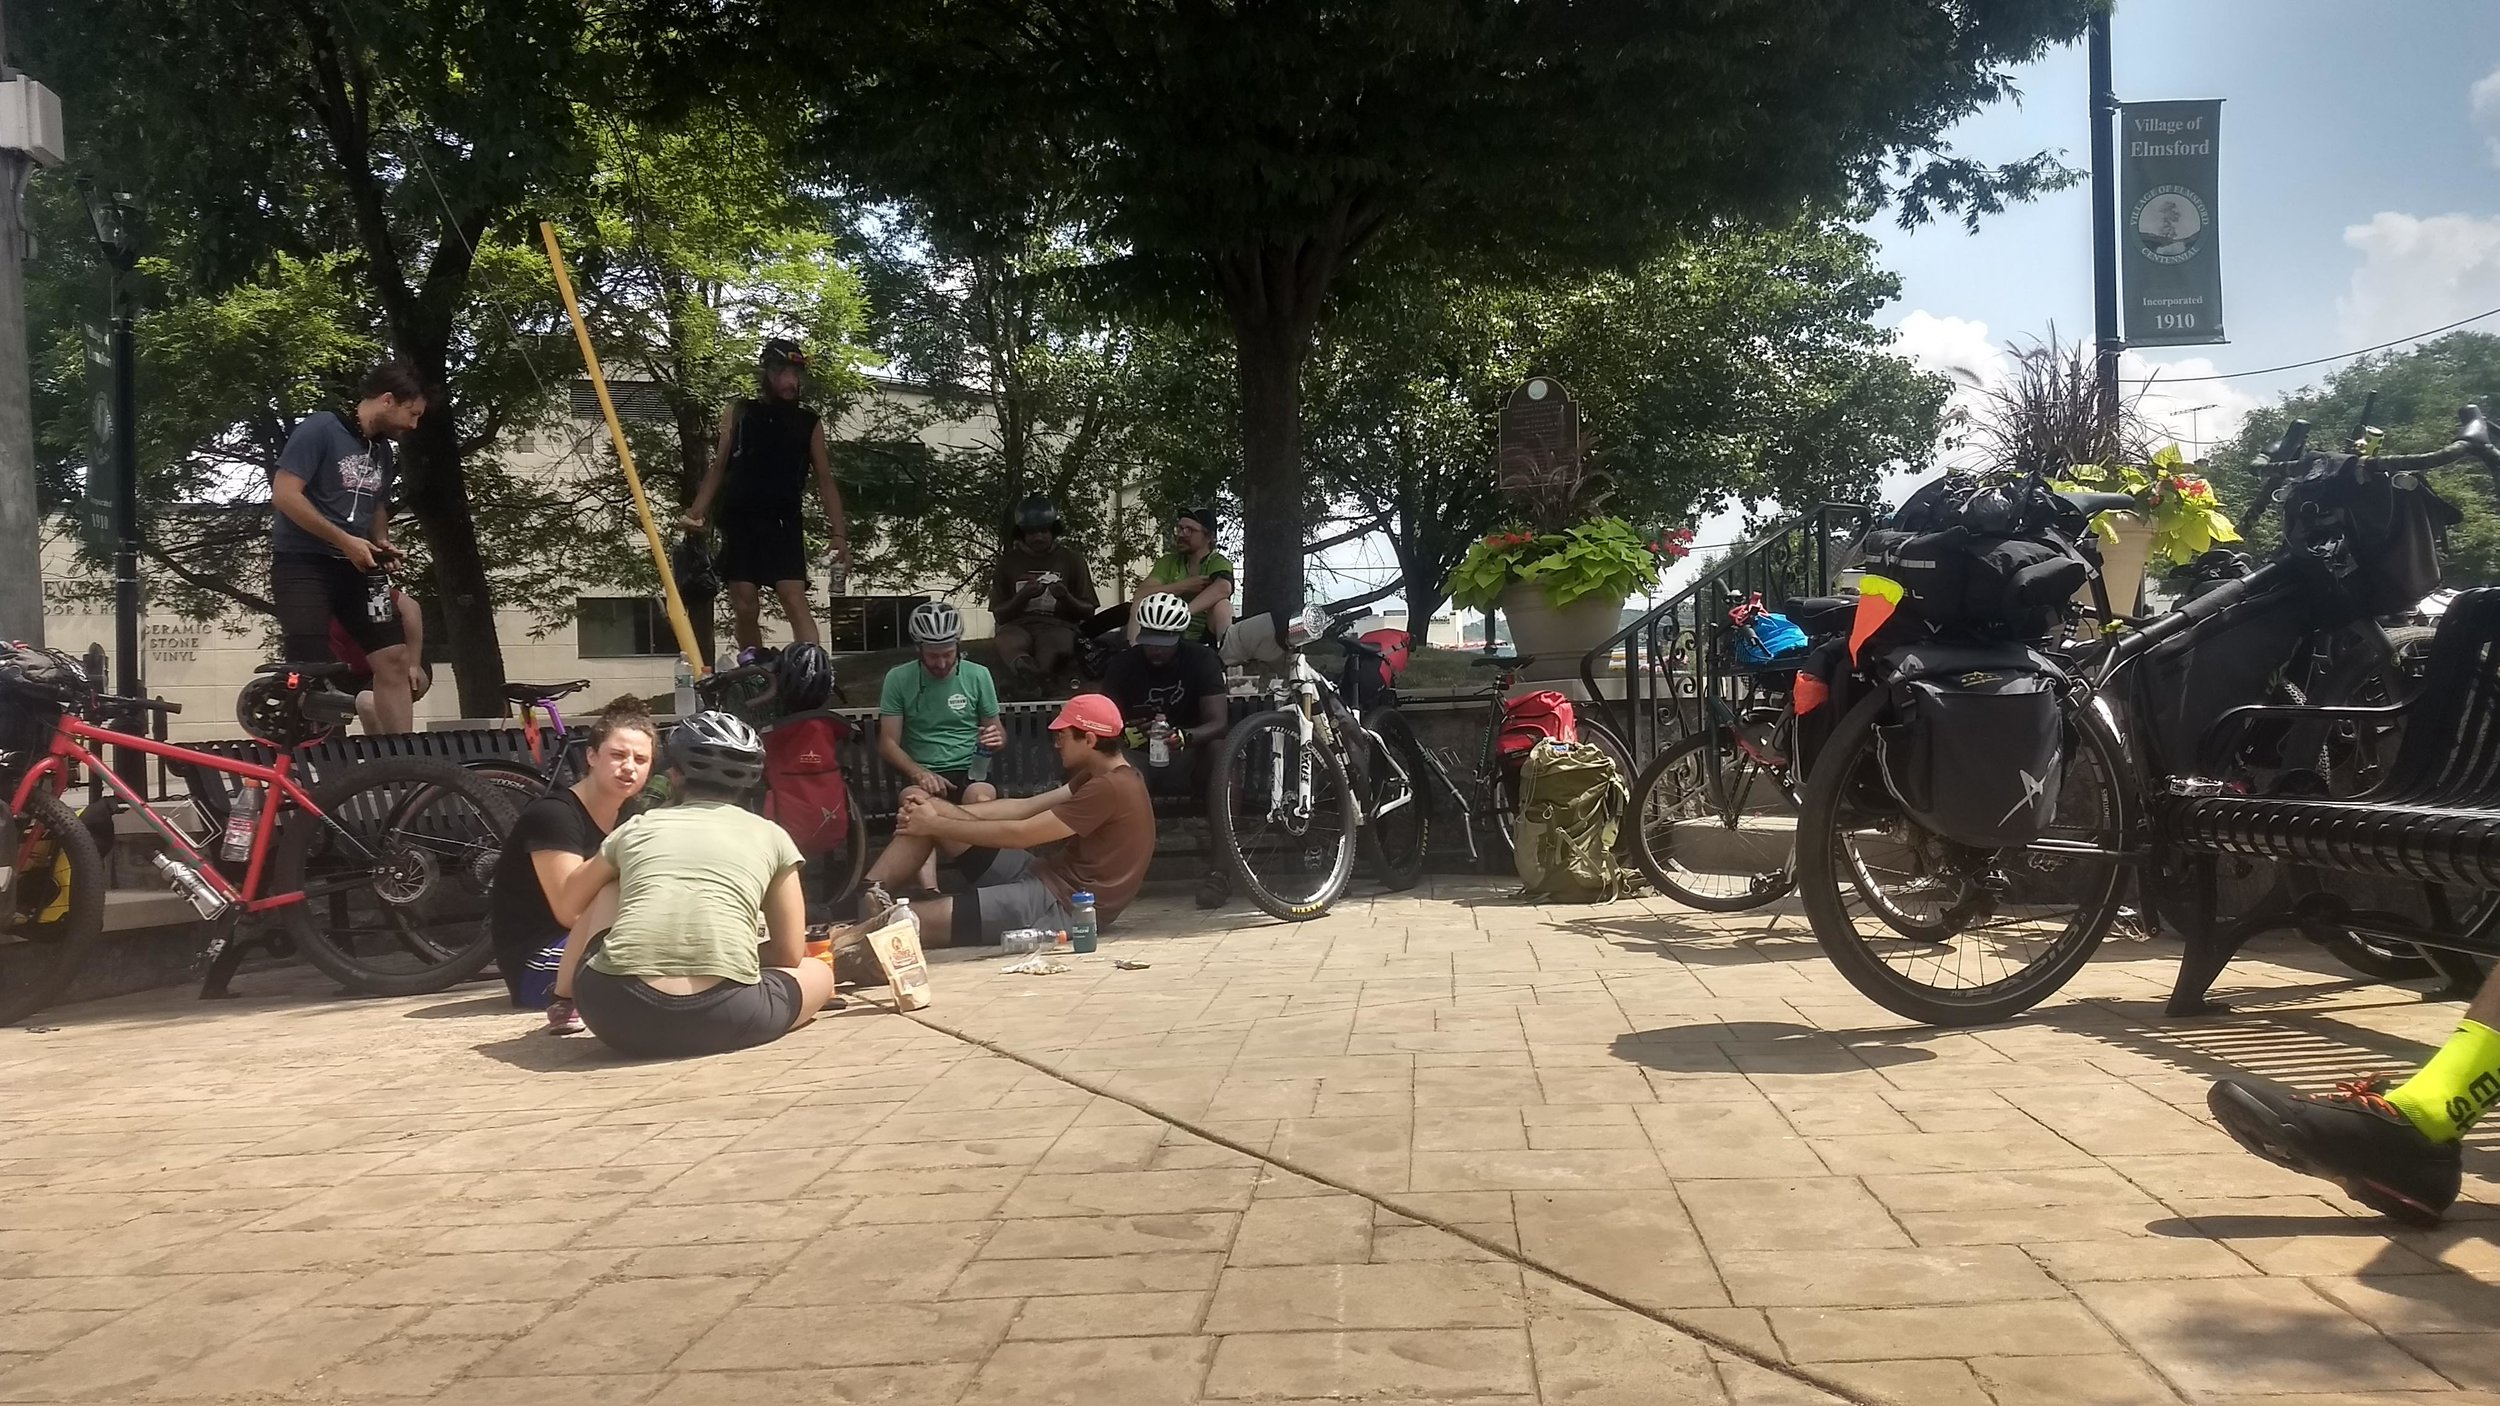 Mile 28 in a Lunch Stop at Elmsford. Photo by @ginaridesbikes (Instagram)